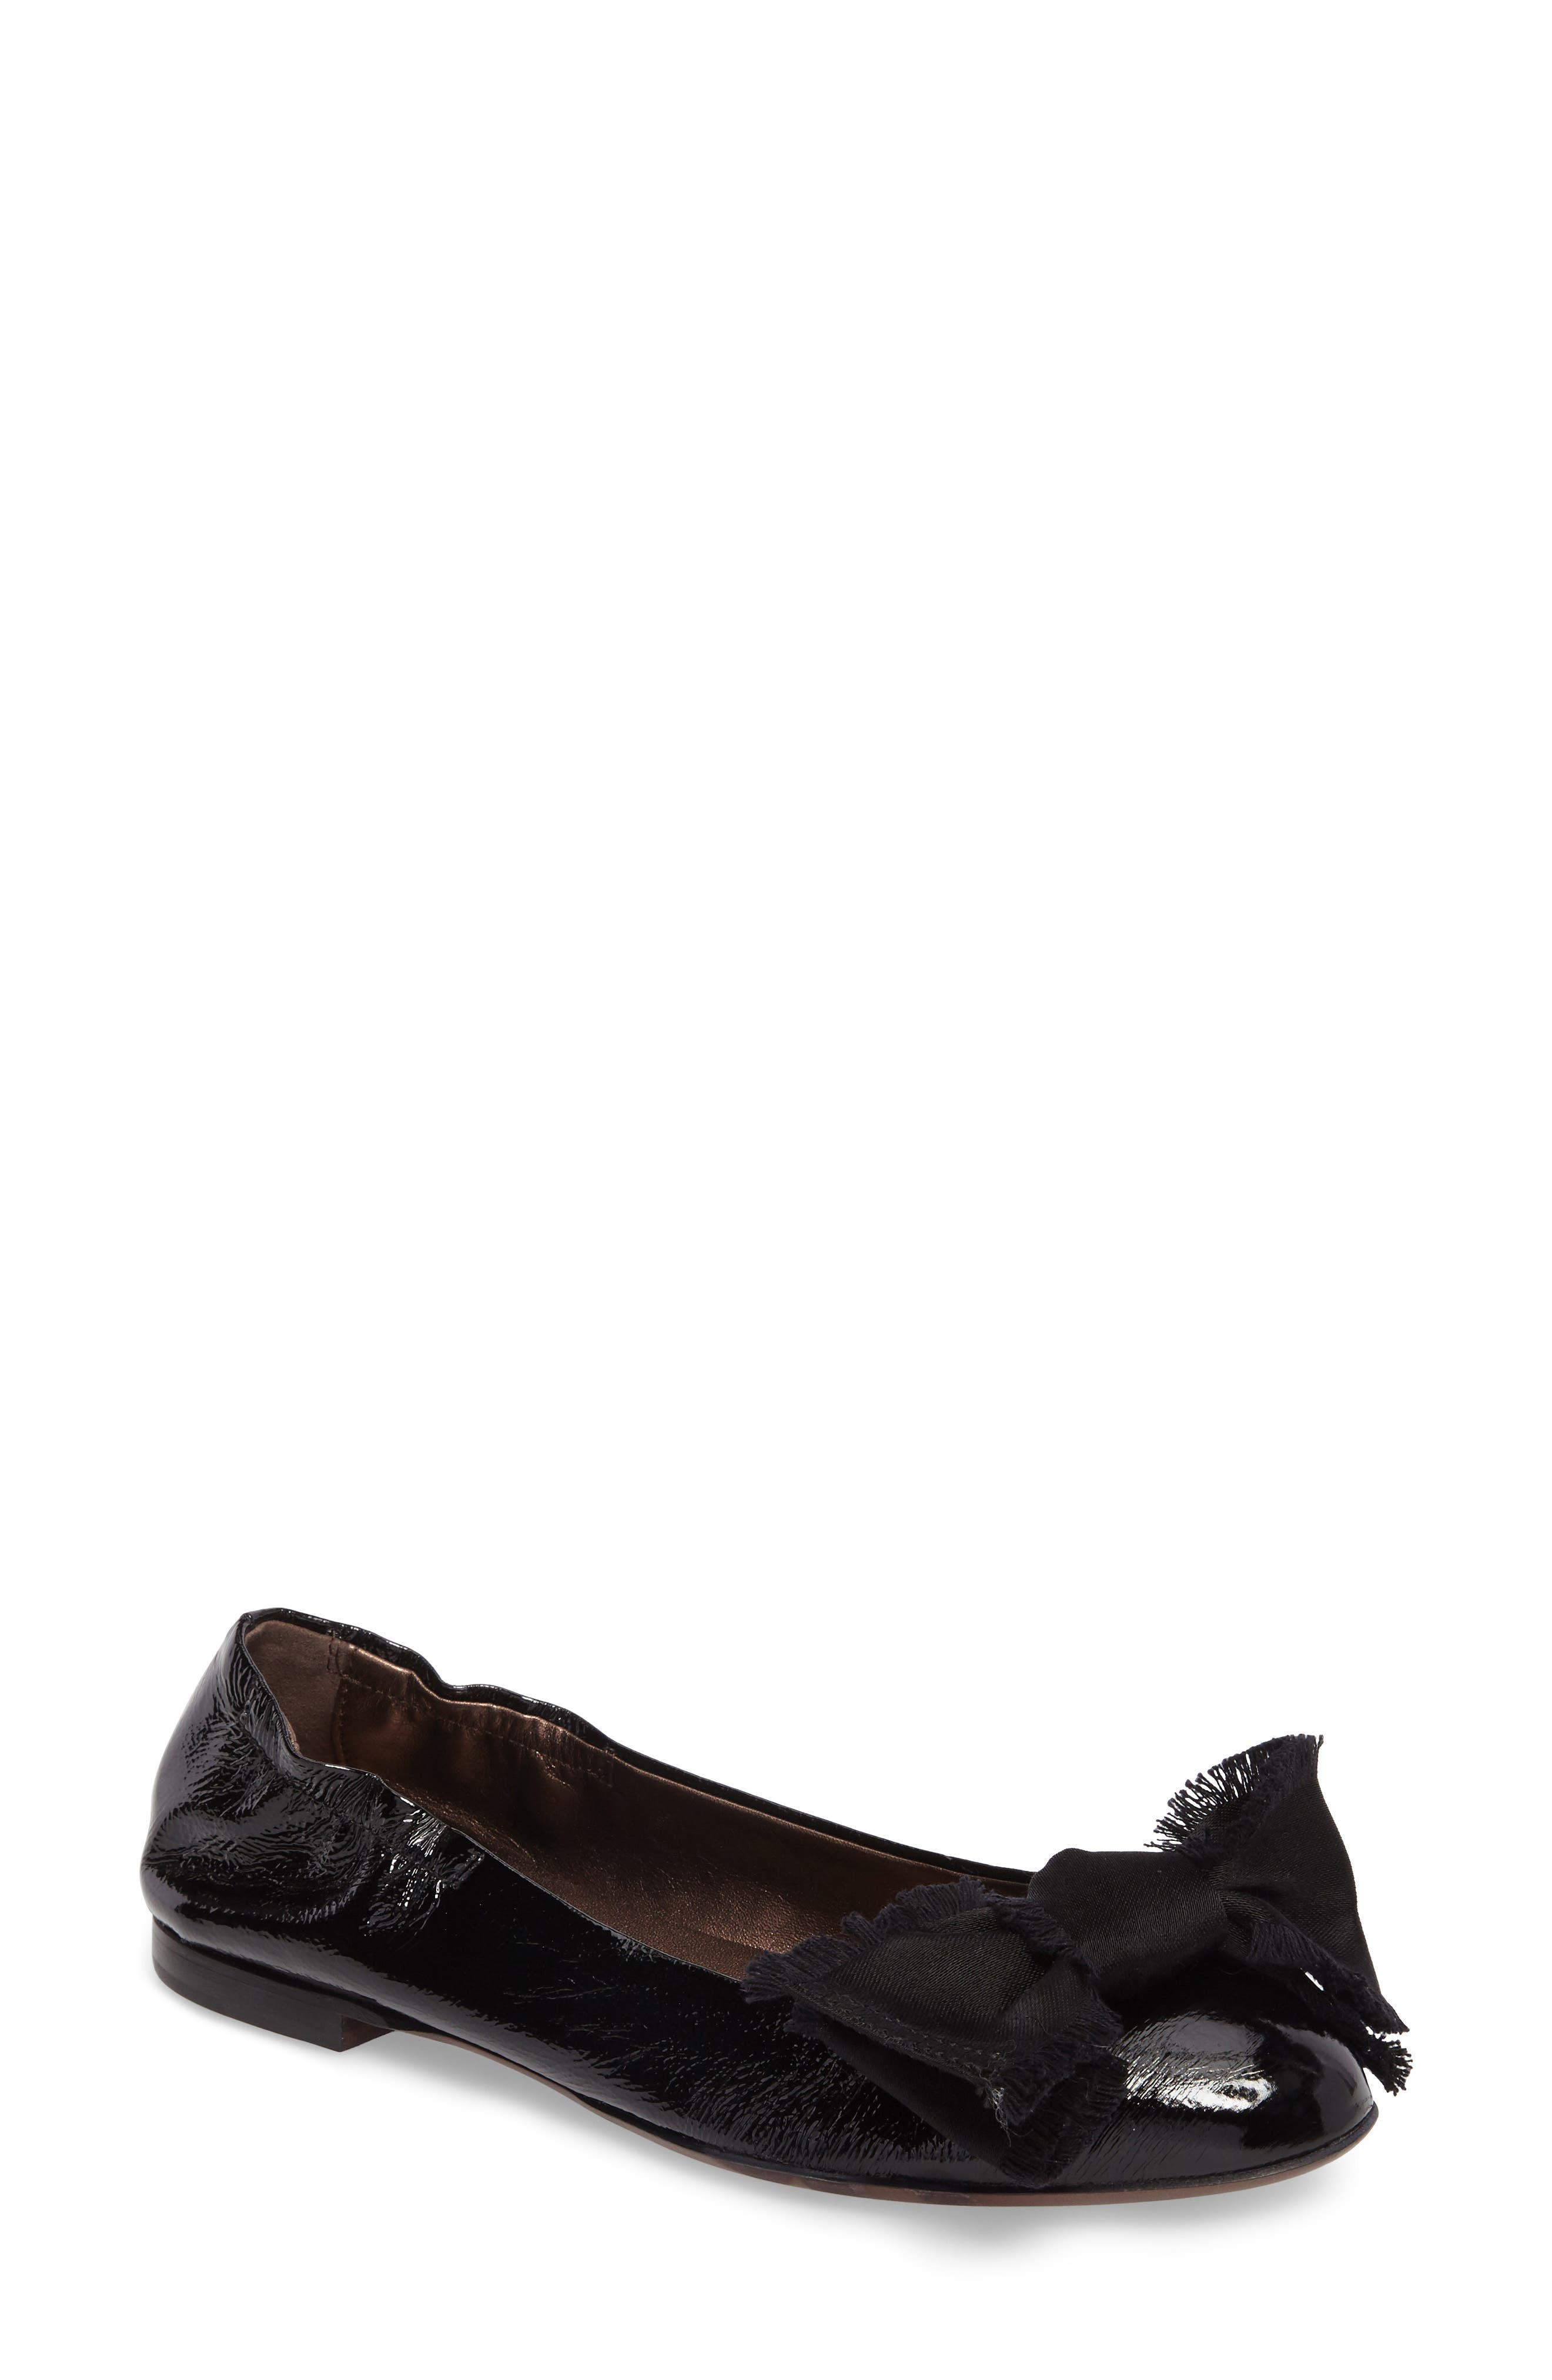 Satin Bow Ballet Flat,                         Main,                         color, BLACK LEATHER